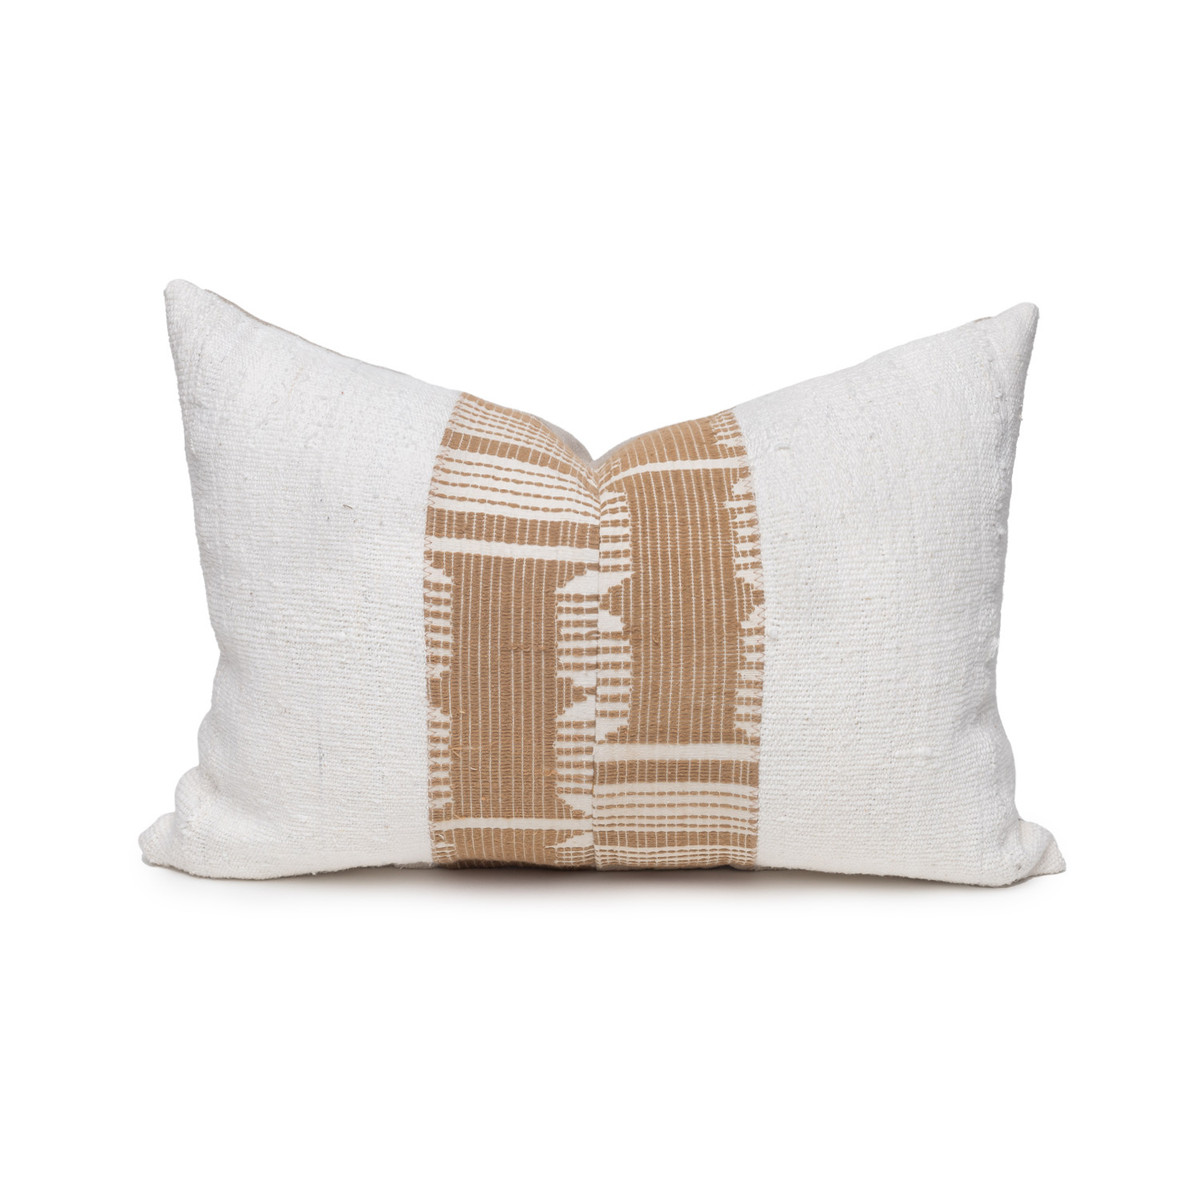 Trina Lumbar Pillow - Aso Oke Natural Linen Pillow with White Mud Cloth- 1420 - Front View